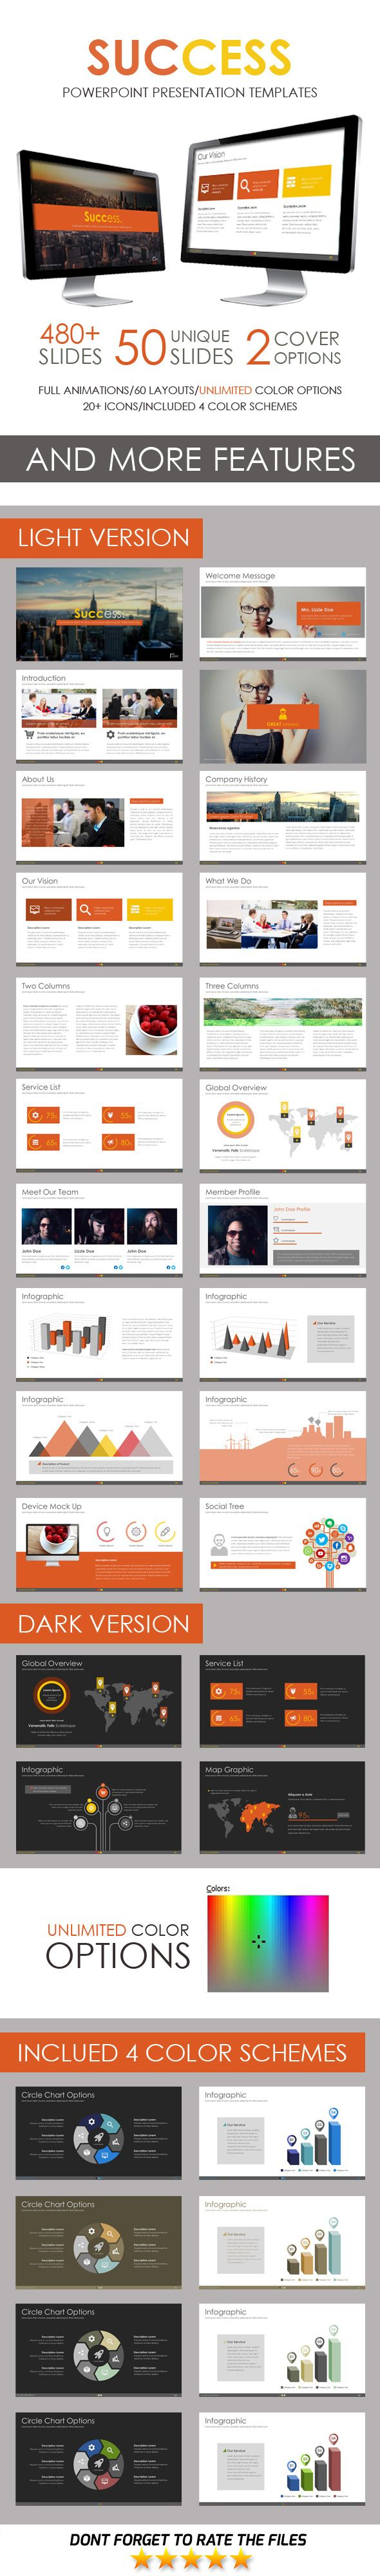 Success Powerpoint Template Pinterest Template Success And